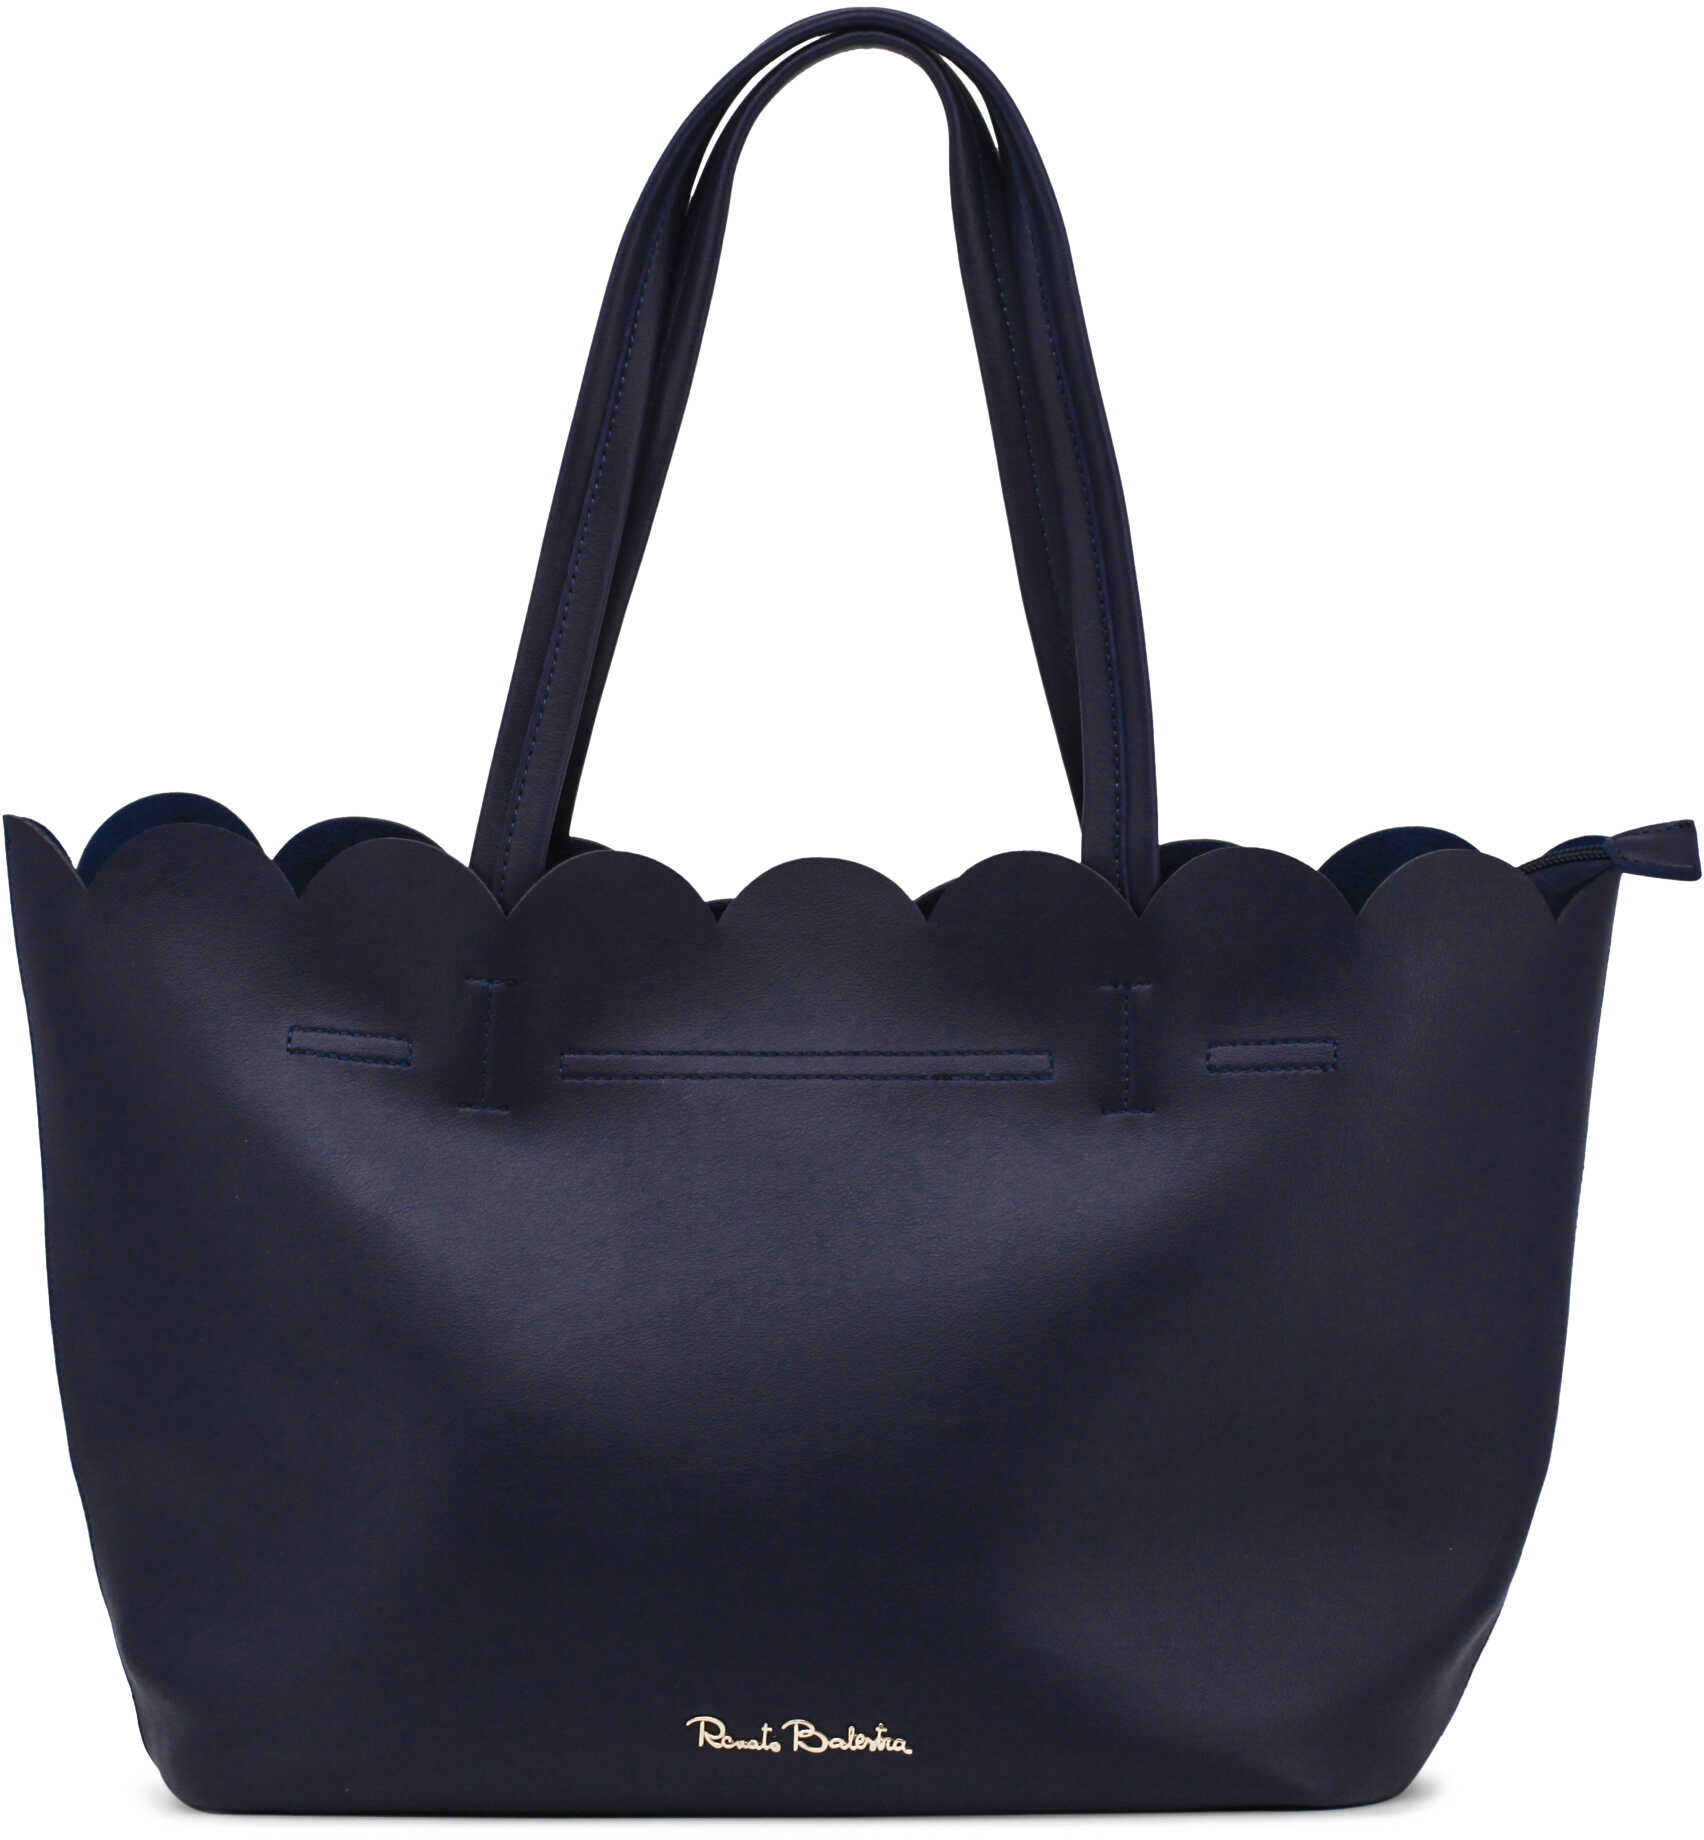 Renato Balestra Beegees-Rb18S-250-2 Blue